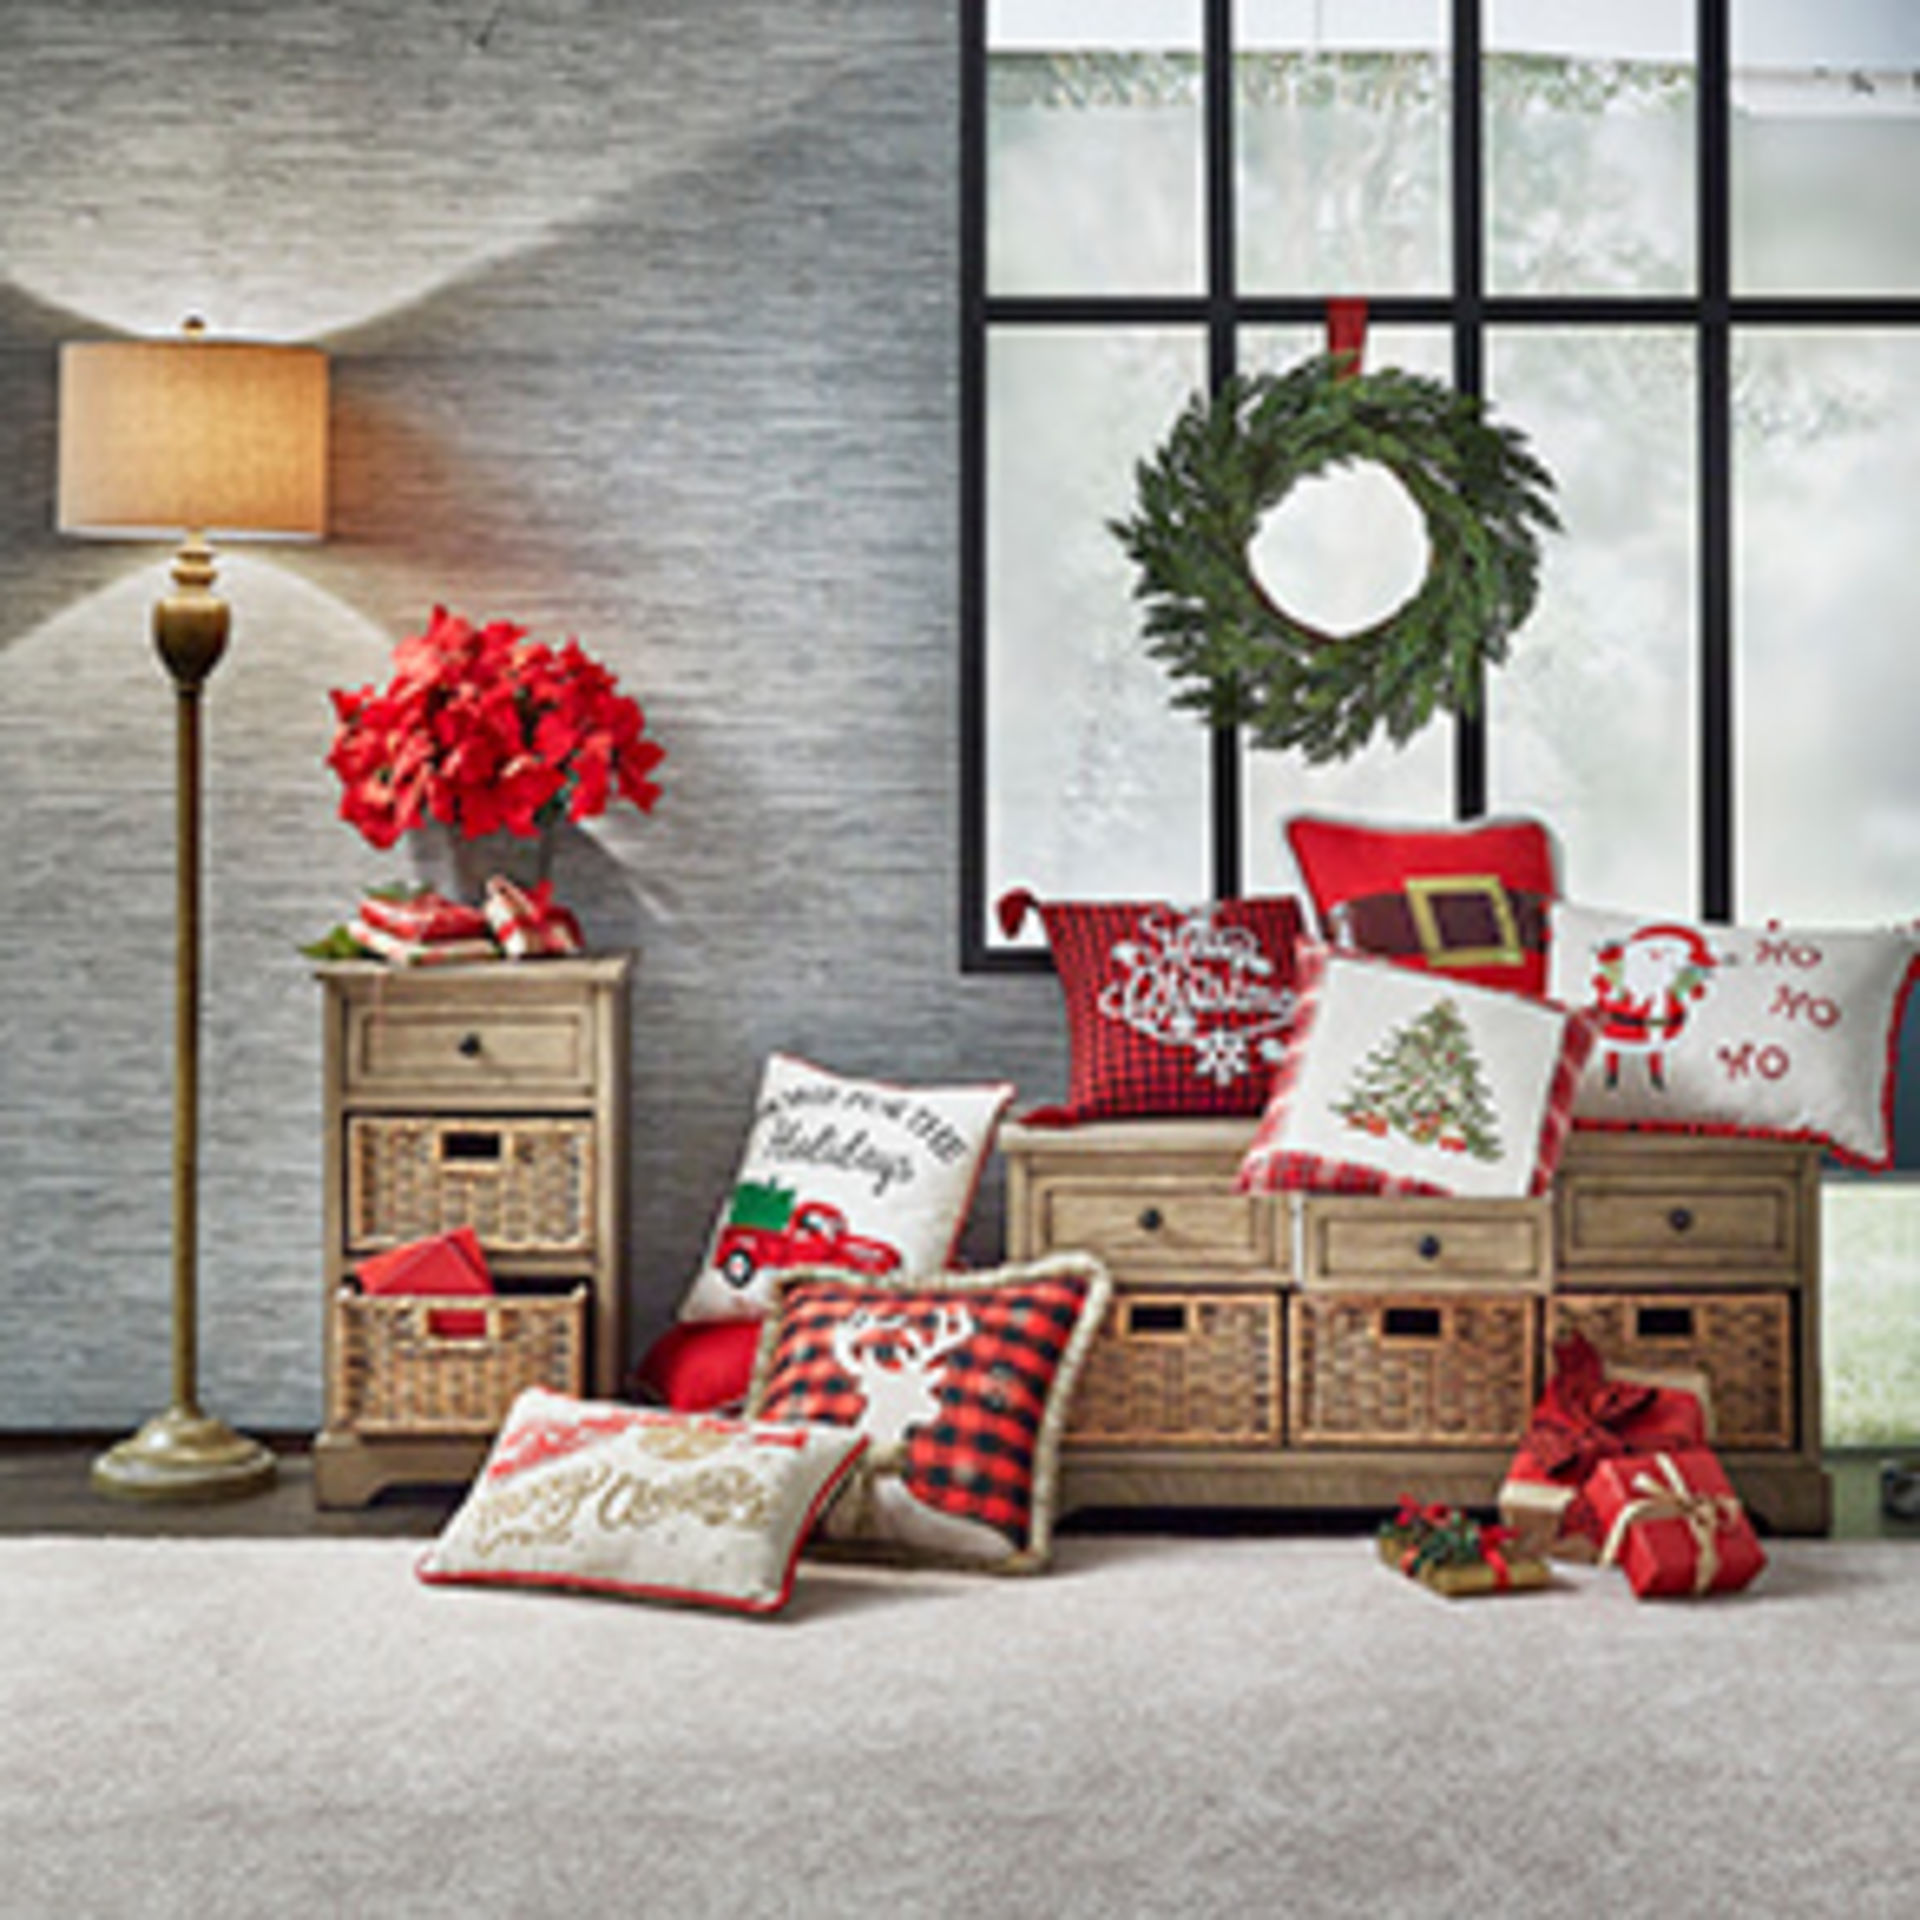 10 Tips for Selling Your Home During the Holidays